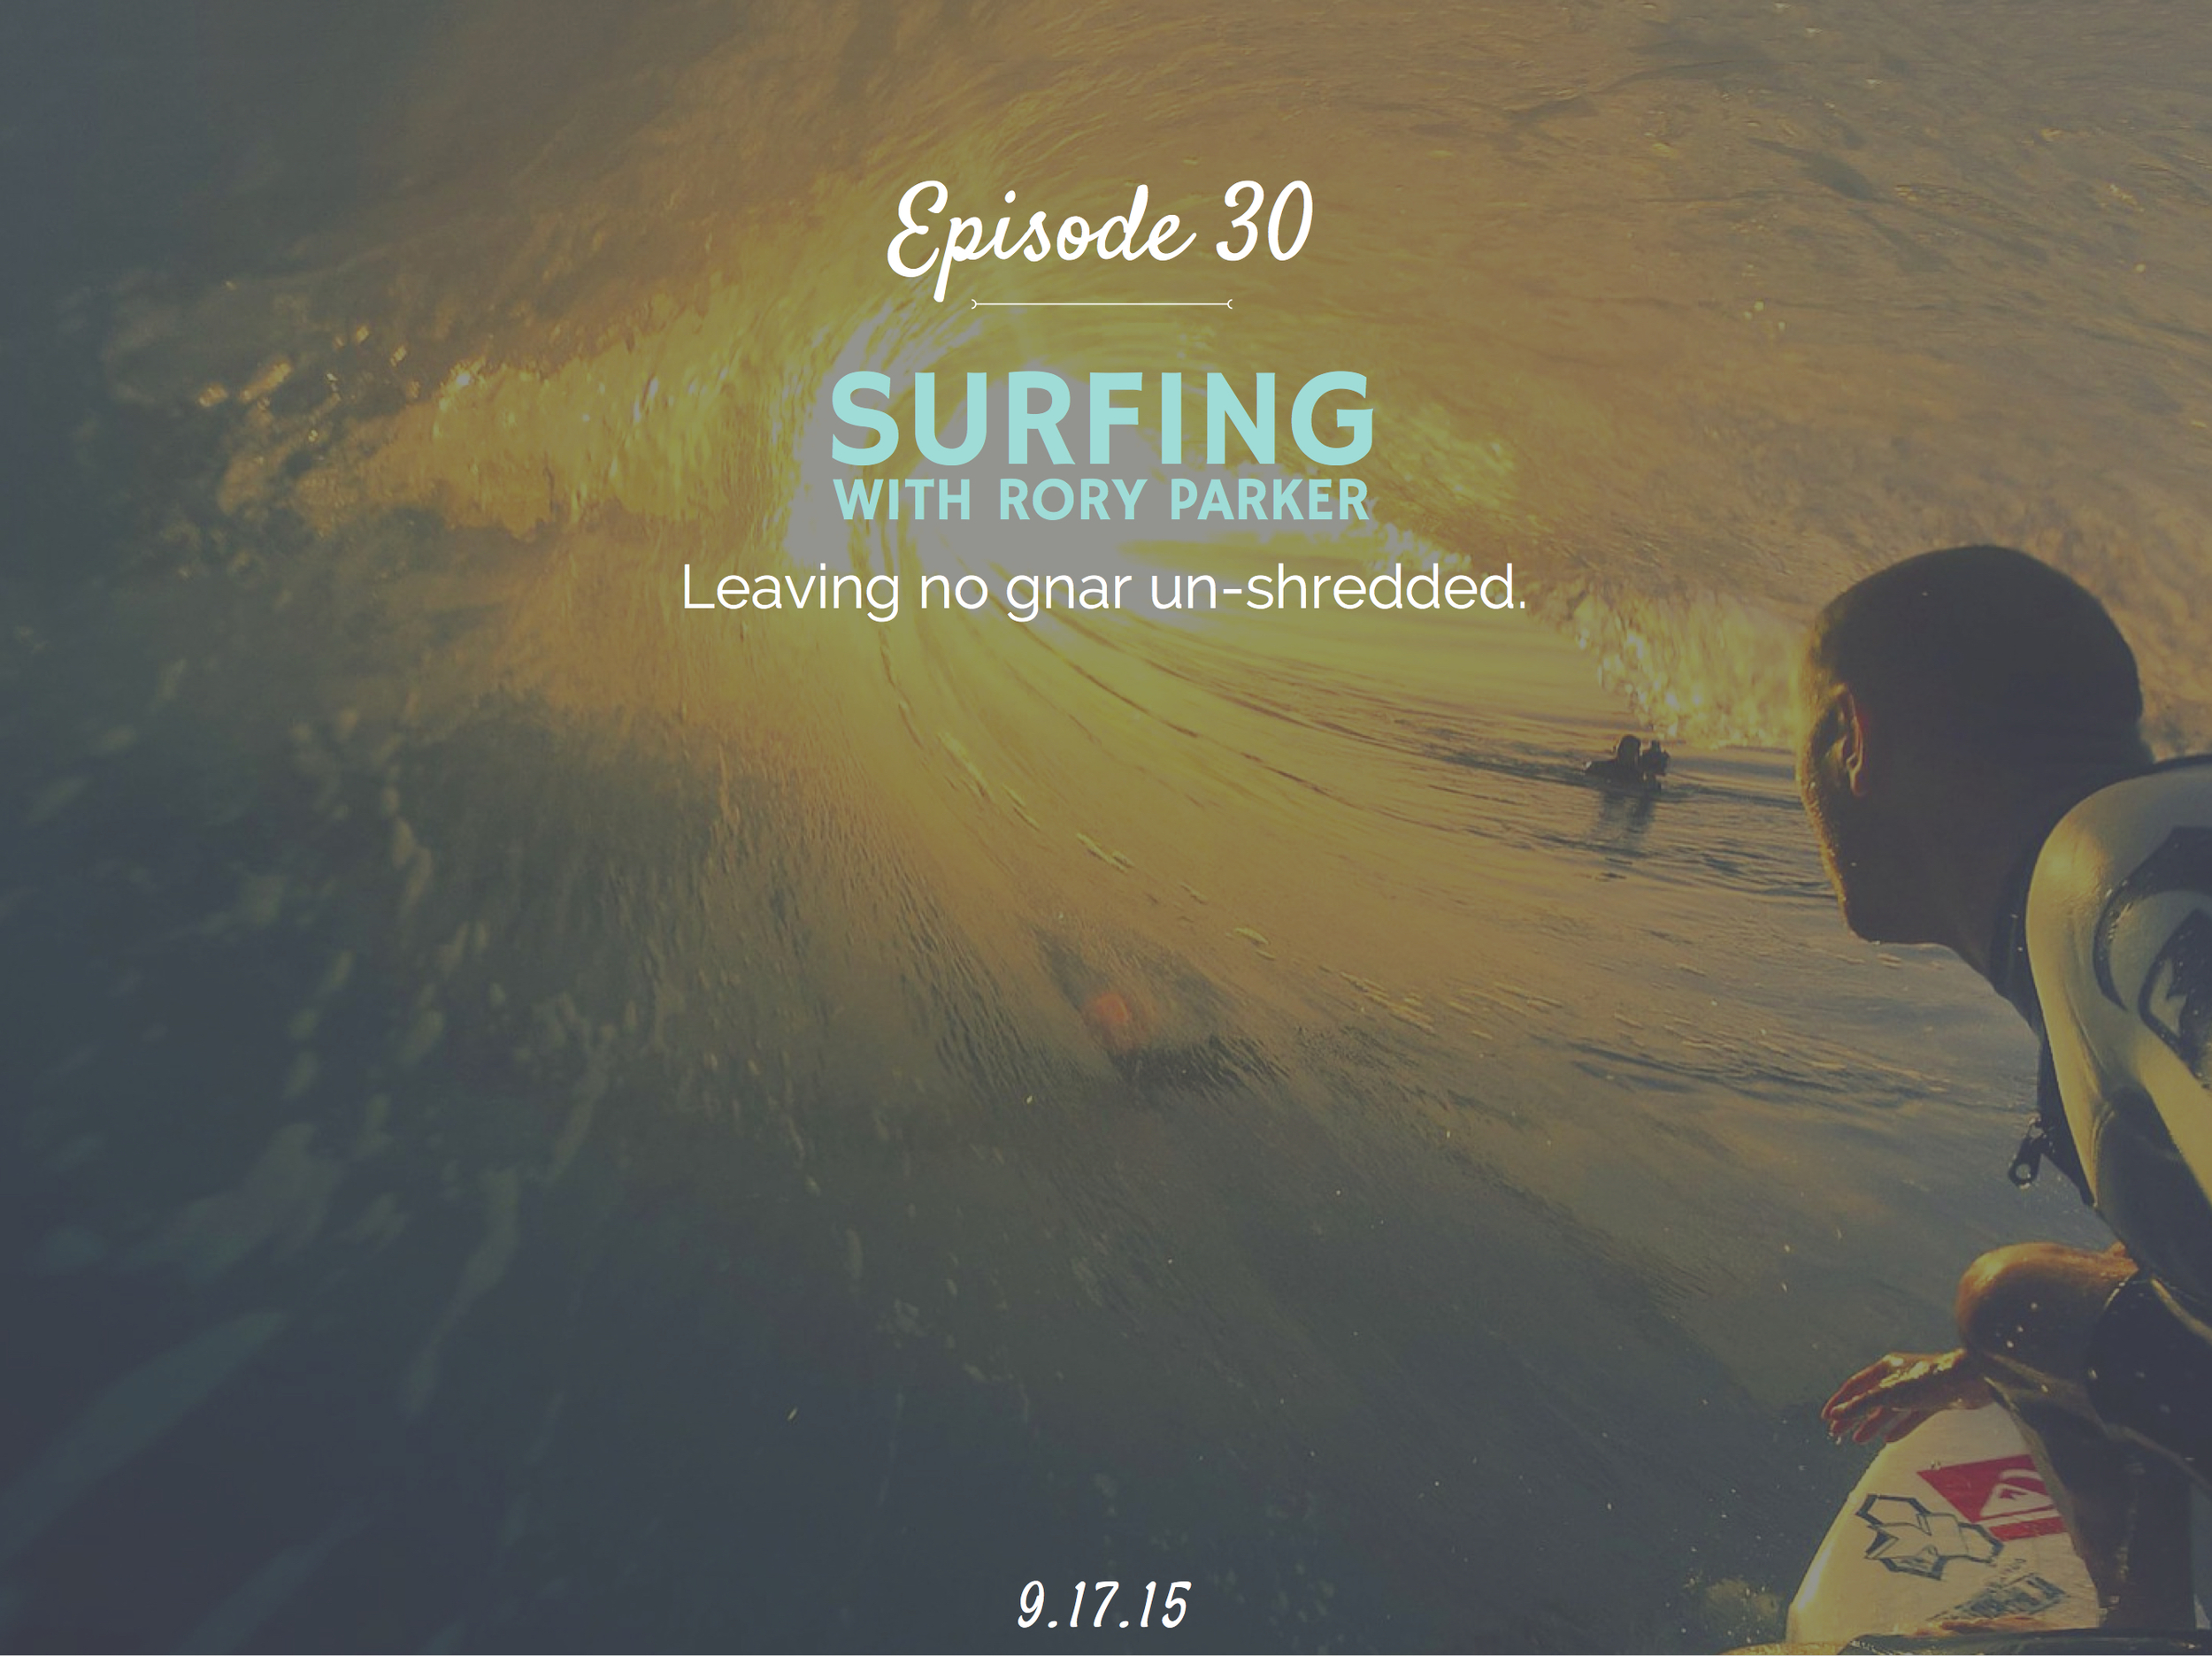 Learn about how to start surfing hobby with Rory Parker